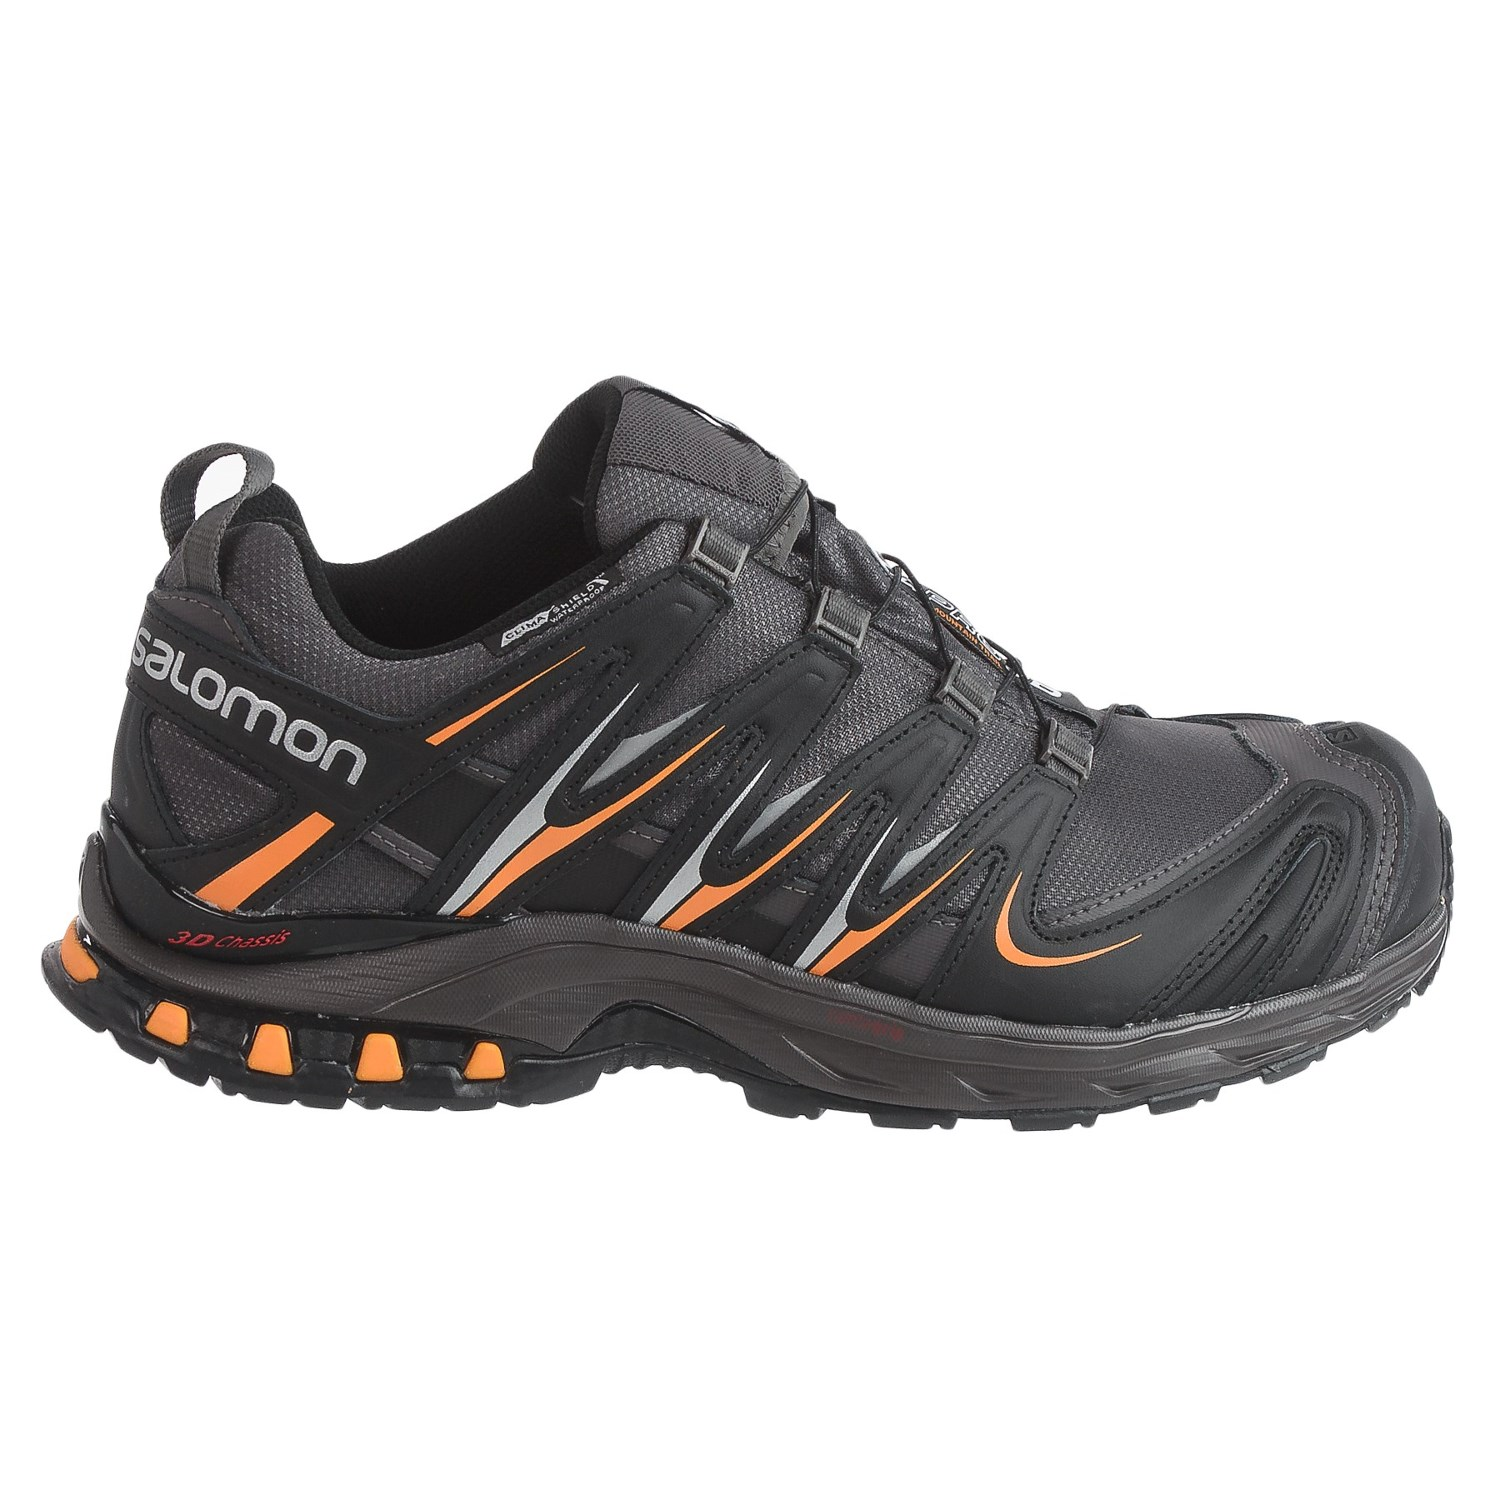 Salomon Running Shoes Rei